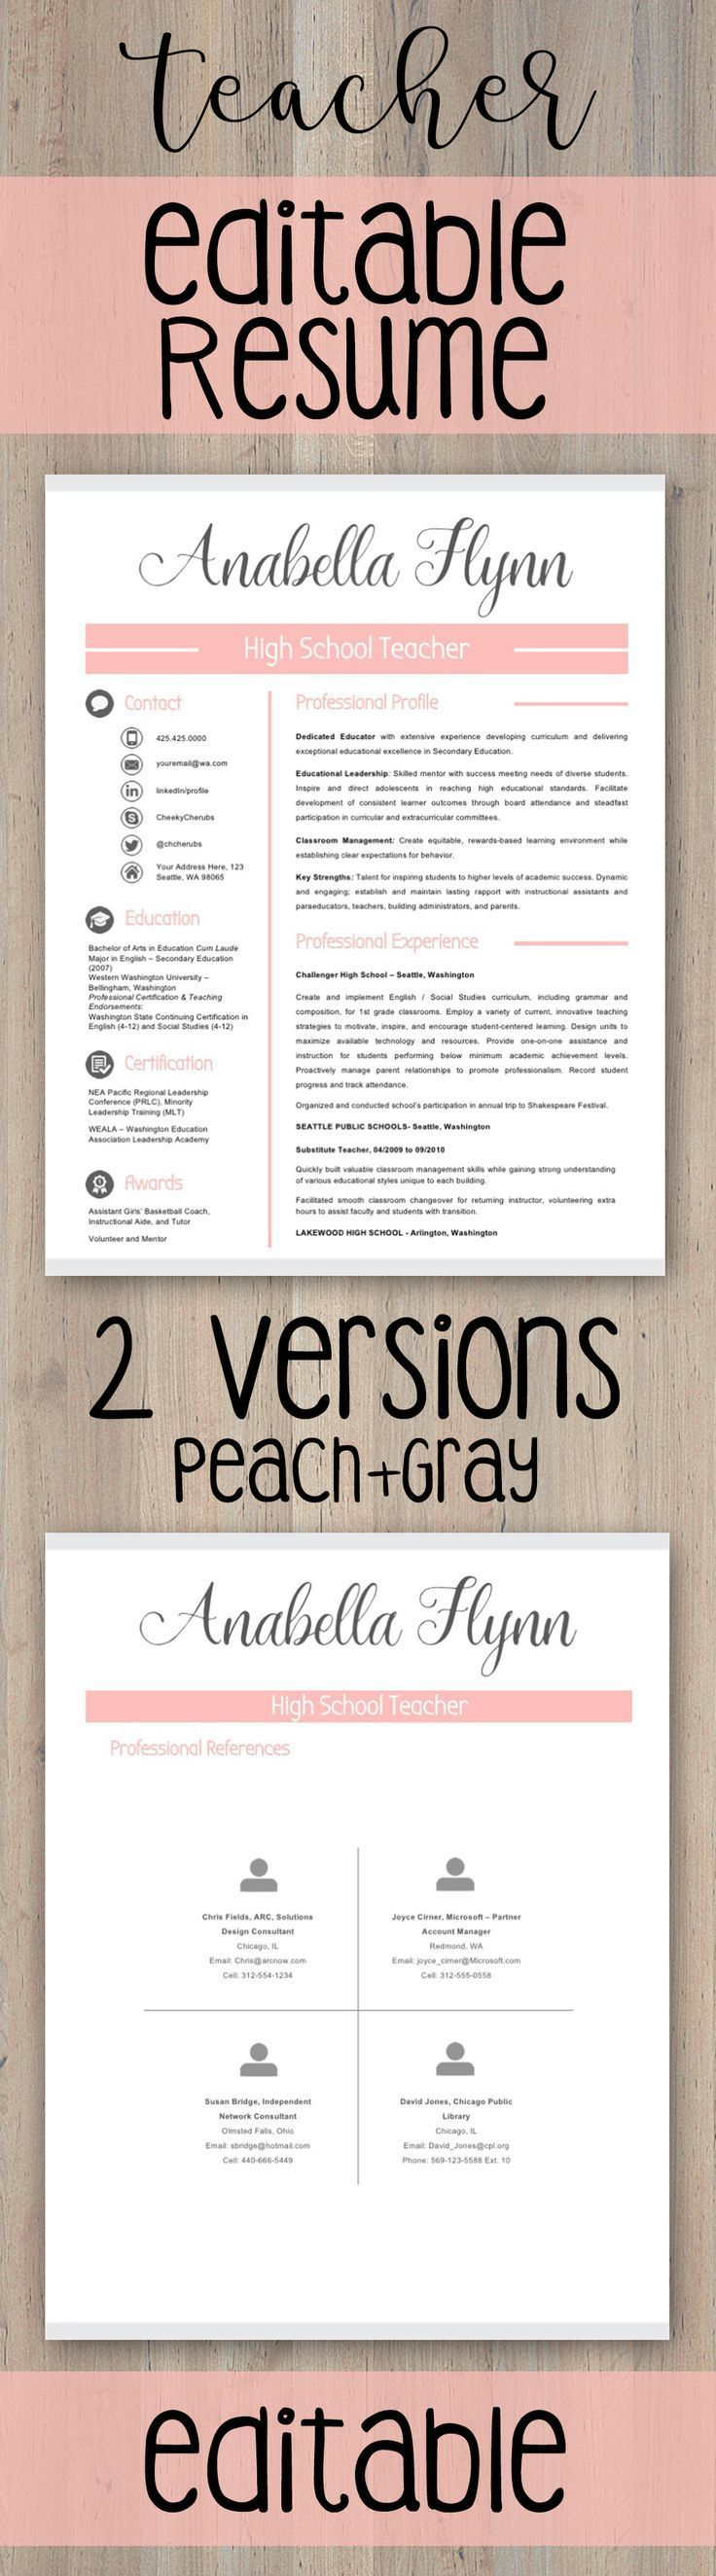 Editable teacher resume template for ms powerpoint and